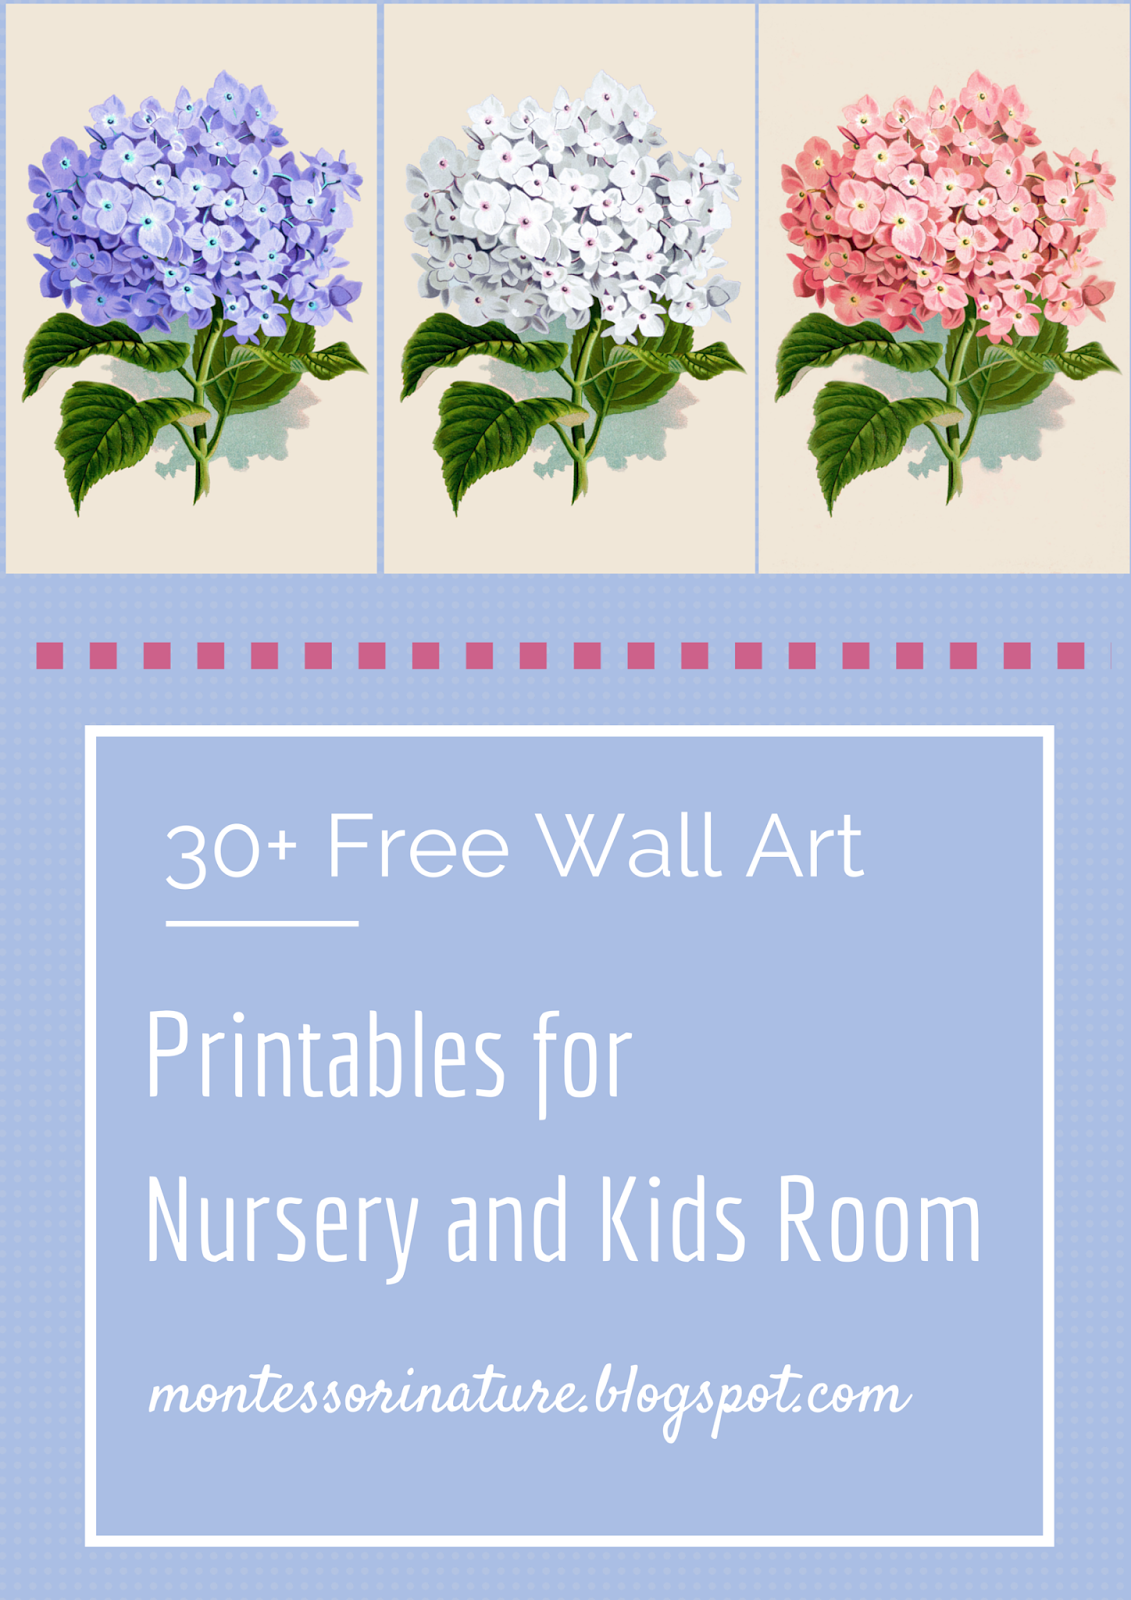 30+ free wall art printables for nursery and kids room. - montessori